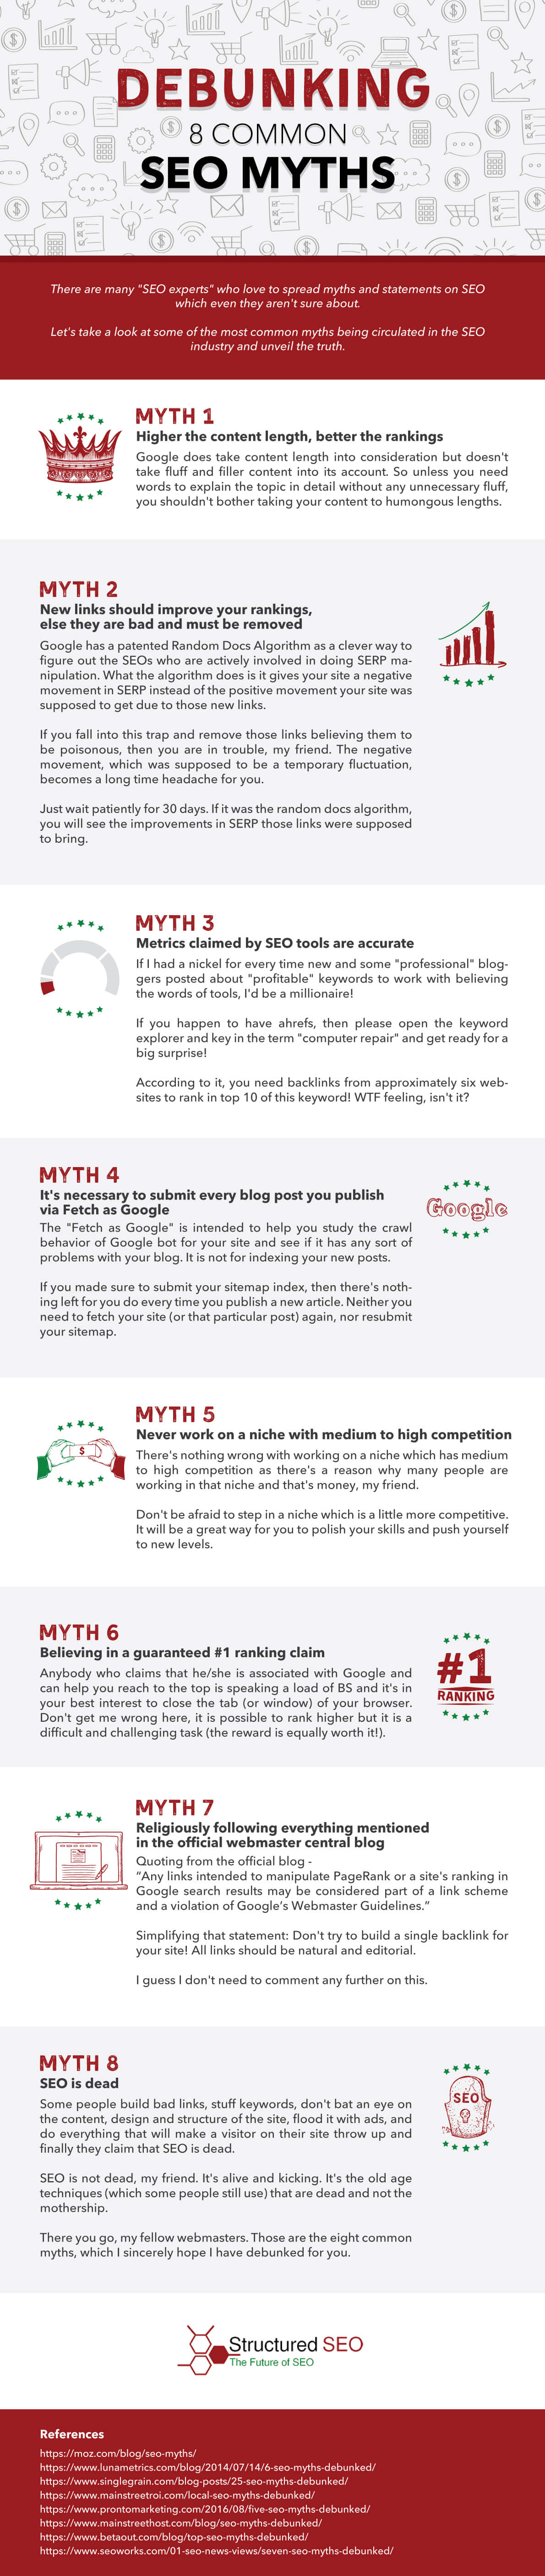 Debunking the 8 Common Myths in SEO Industry